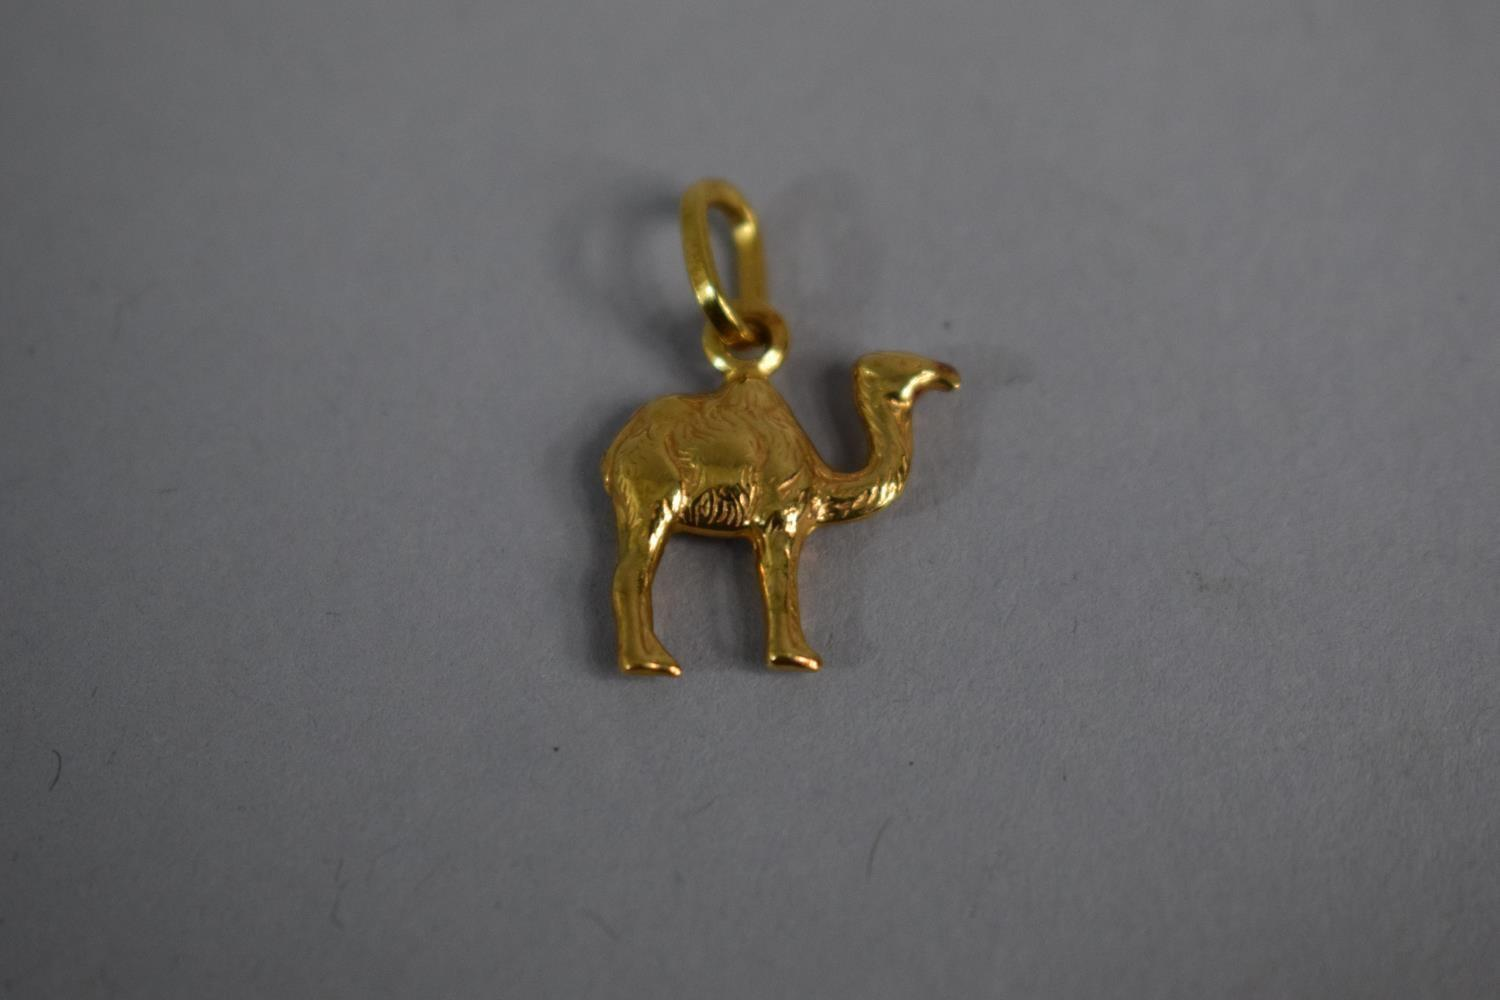 Lot 306 - An 18ct Gold Charm/Pendant Modelled as a Dromedary Camel. 1.7gms